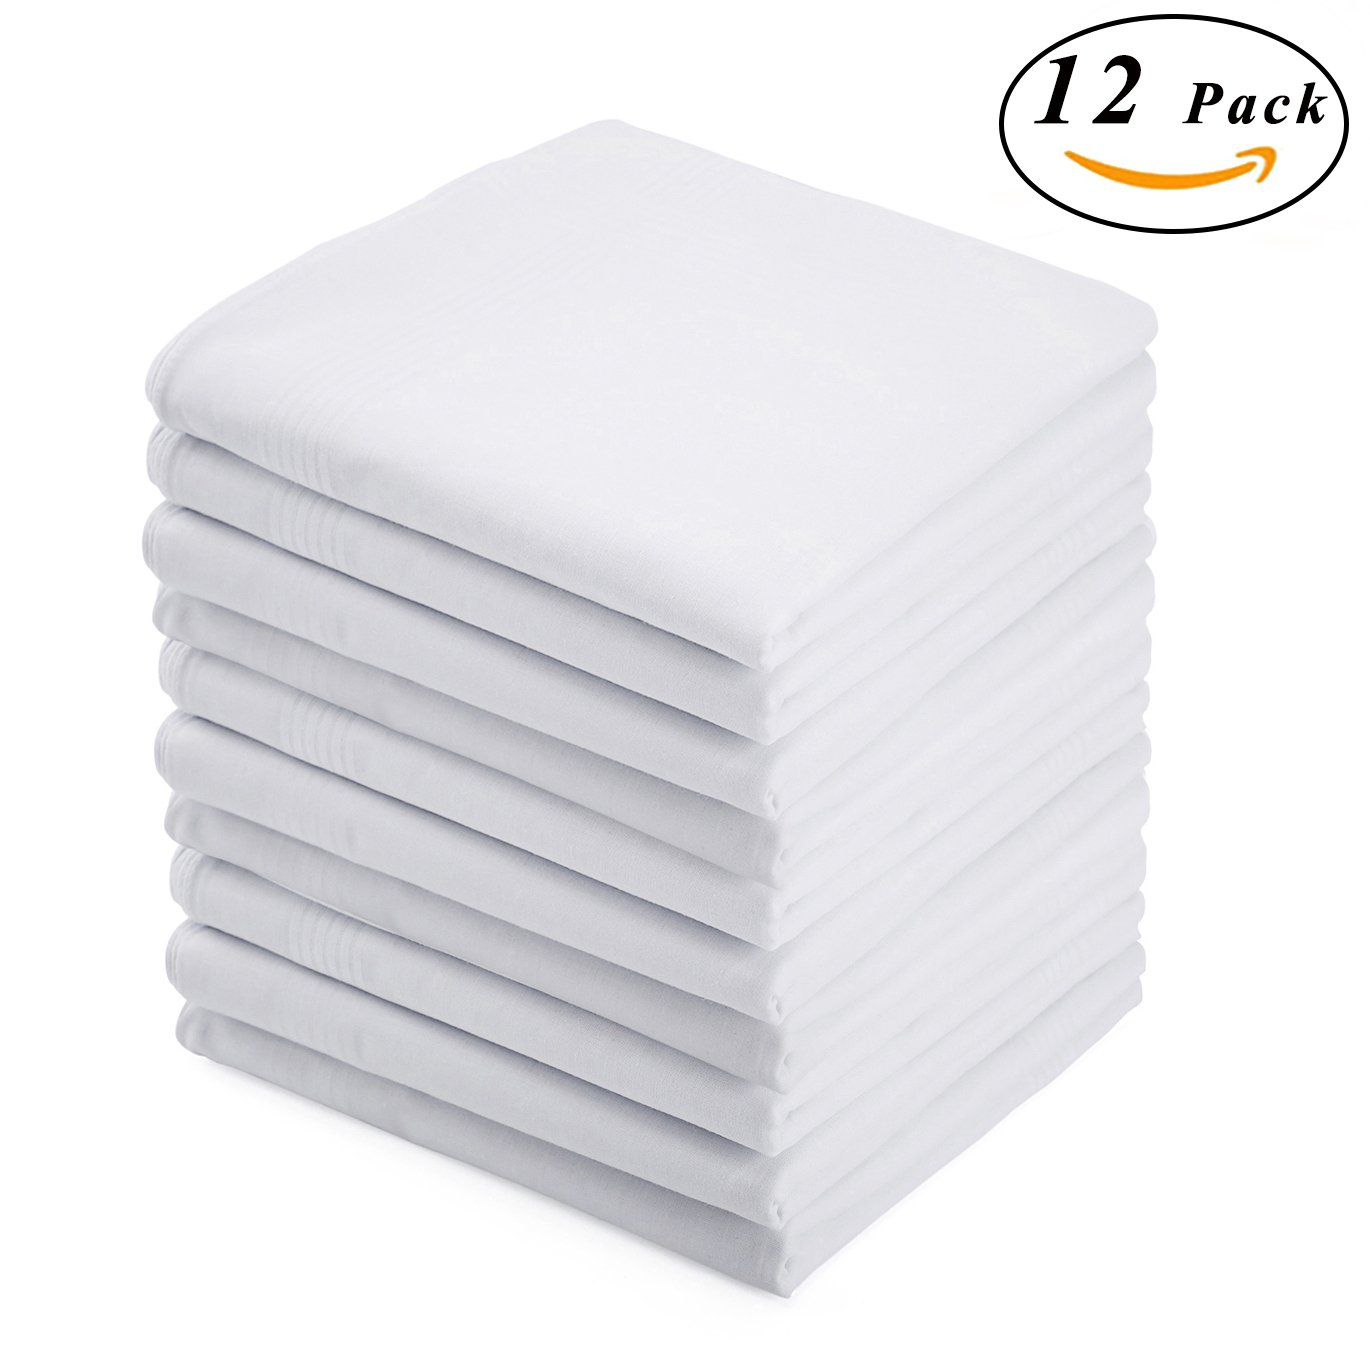 BoosKey Handkerchiefs Mens Cotton Soft, White Hankies Large and Absorbent for Men